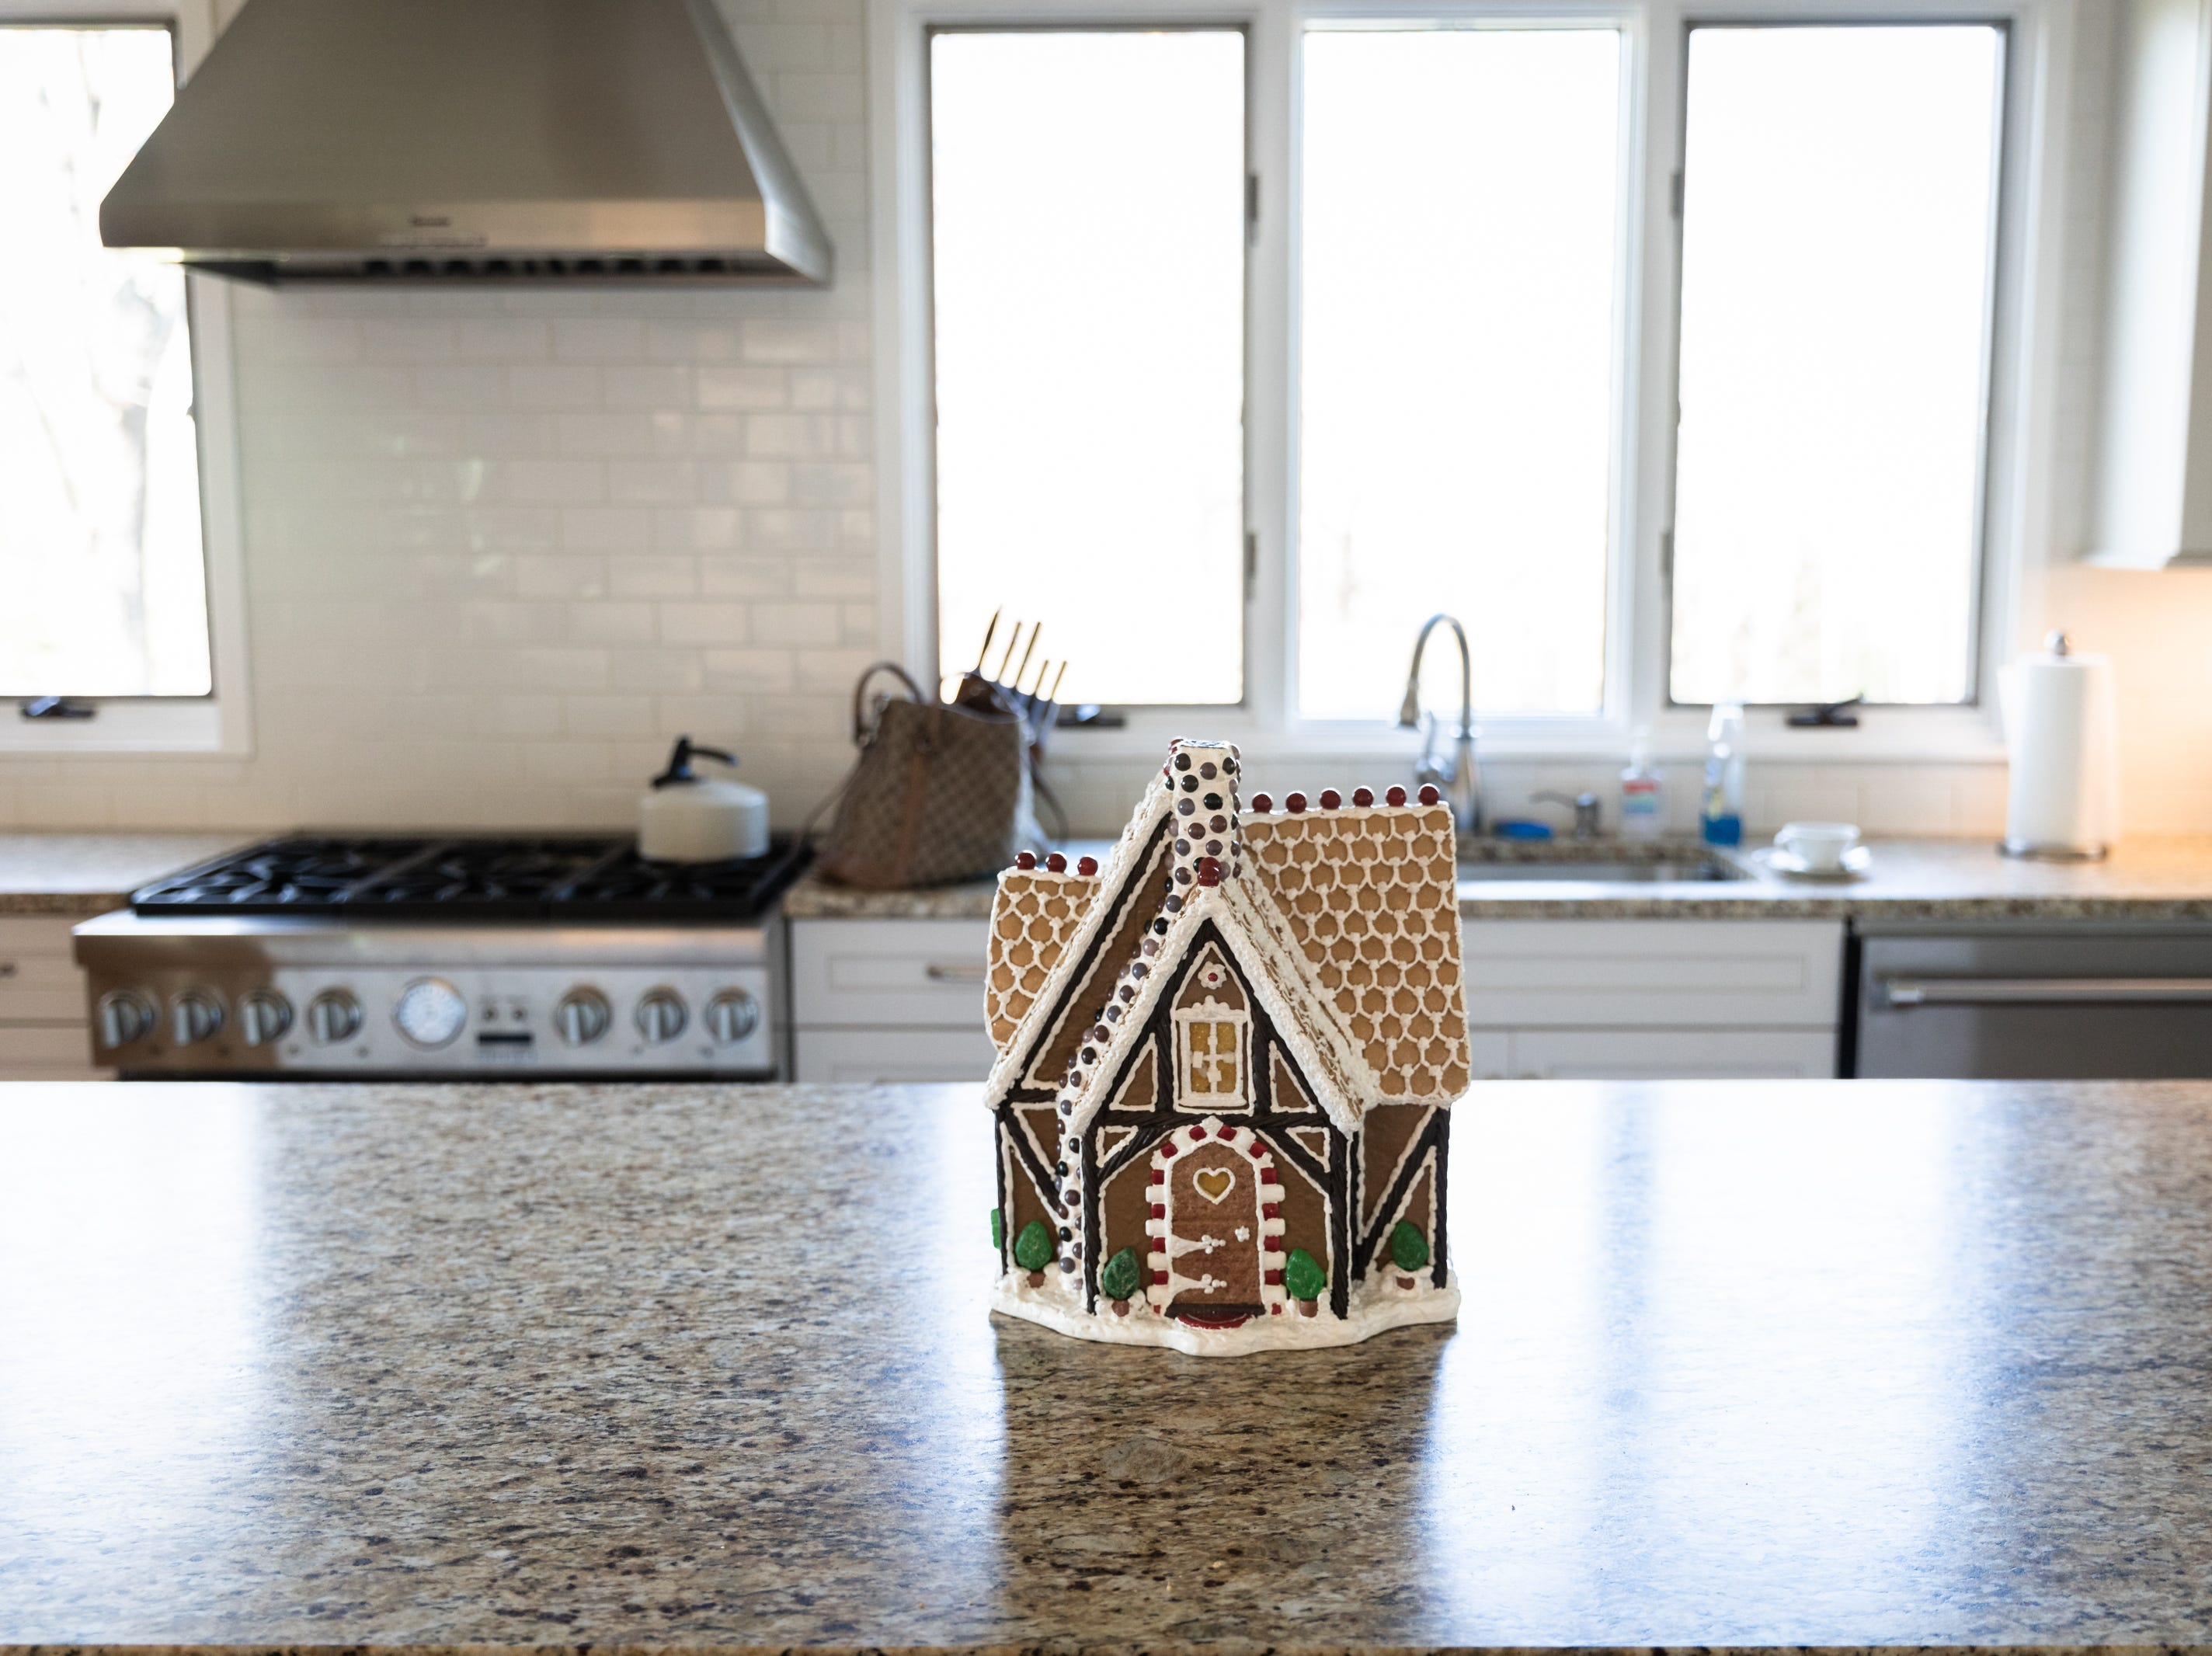 A ginger bread house in the kitchen of the Governor's Western Residence on Patton Mountain Road in Asheville.